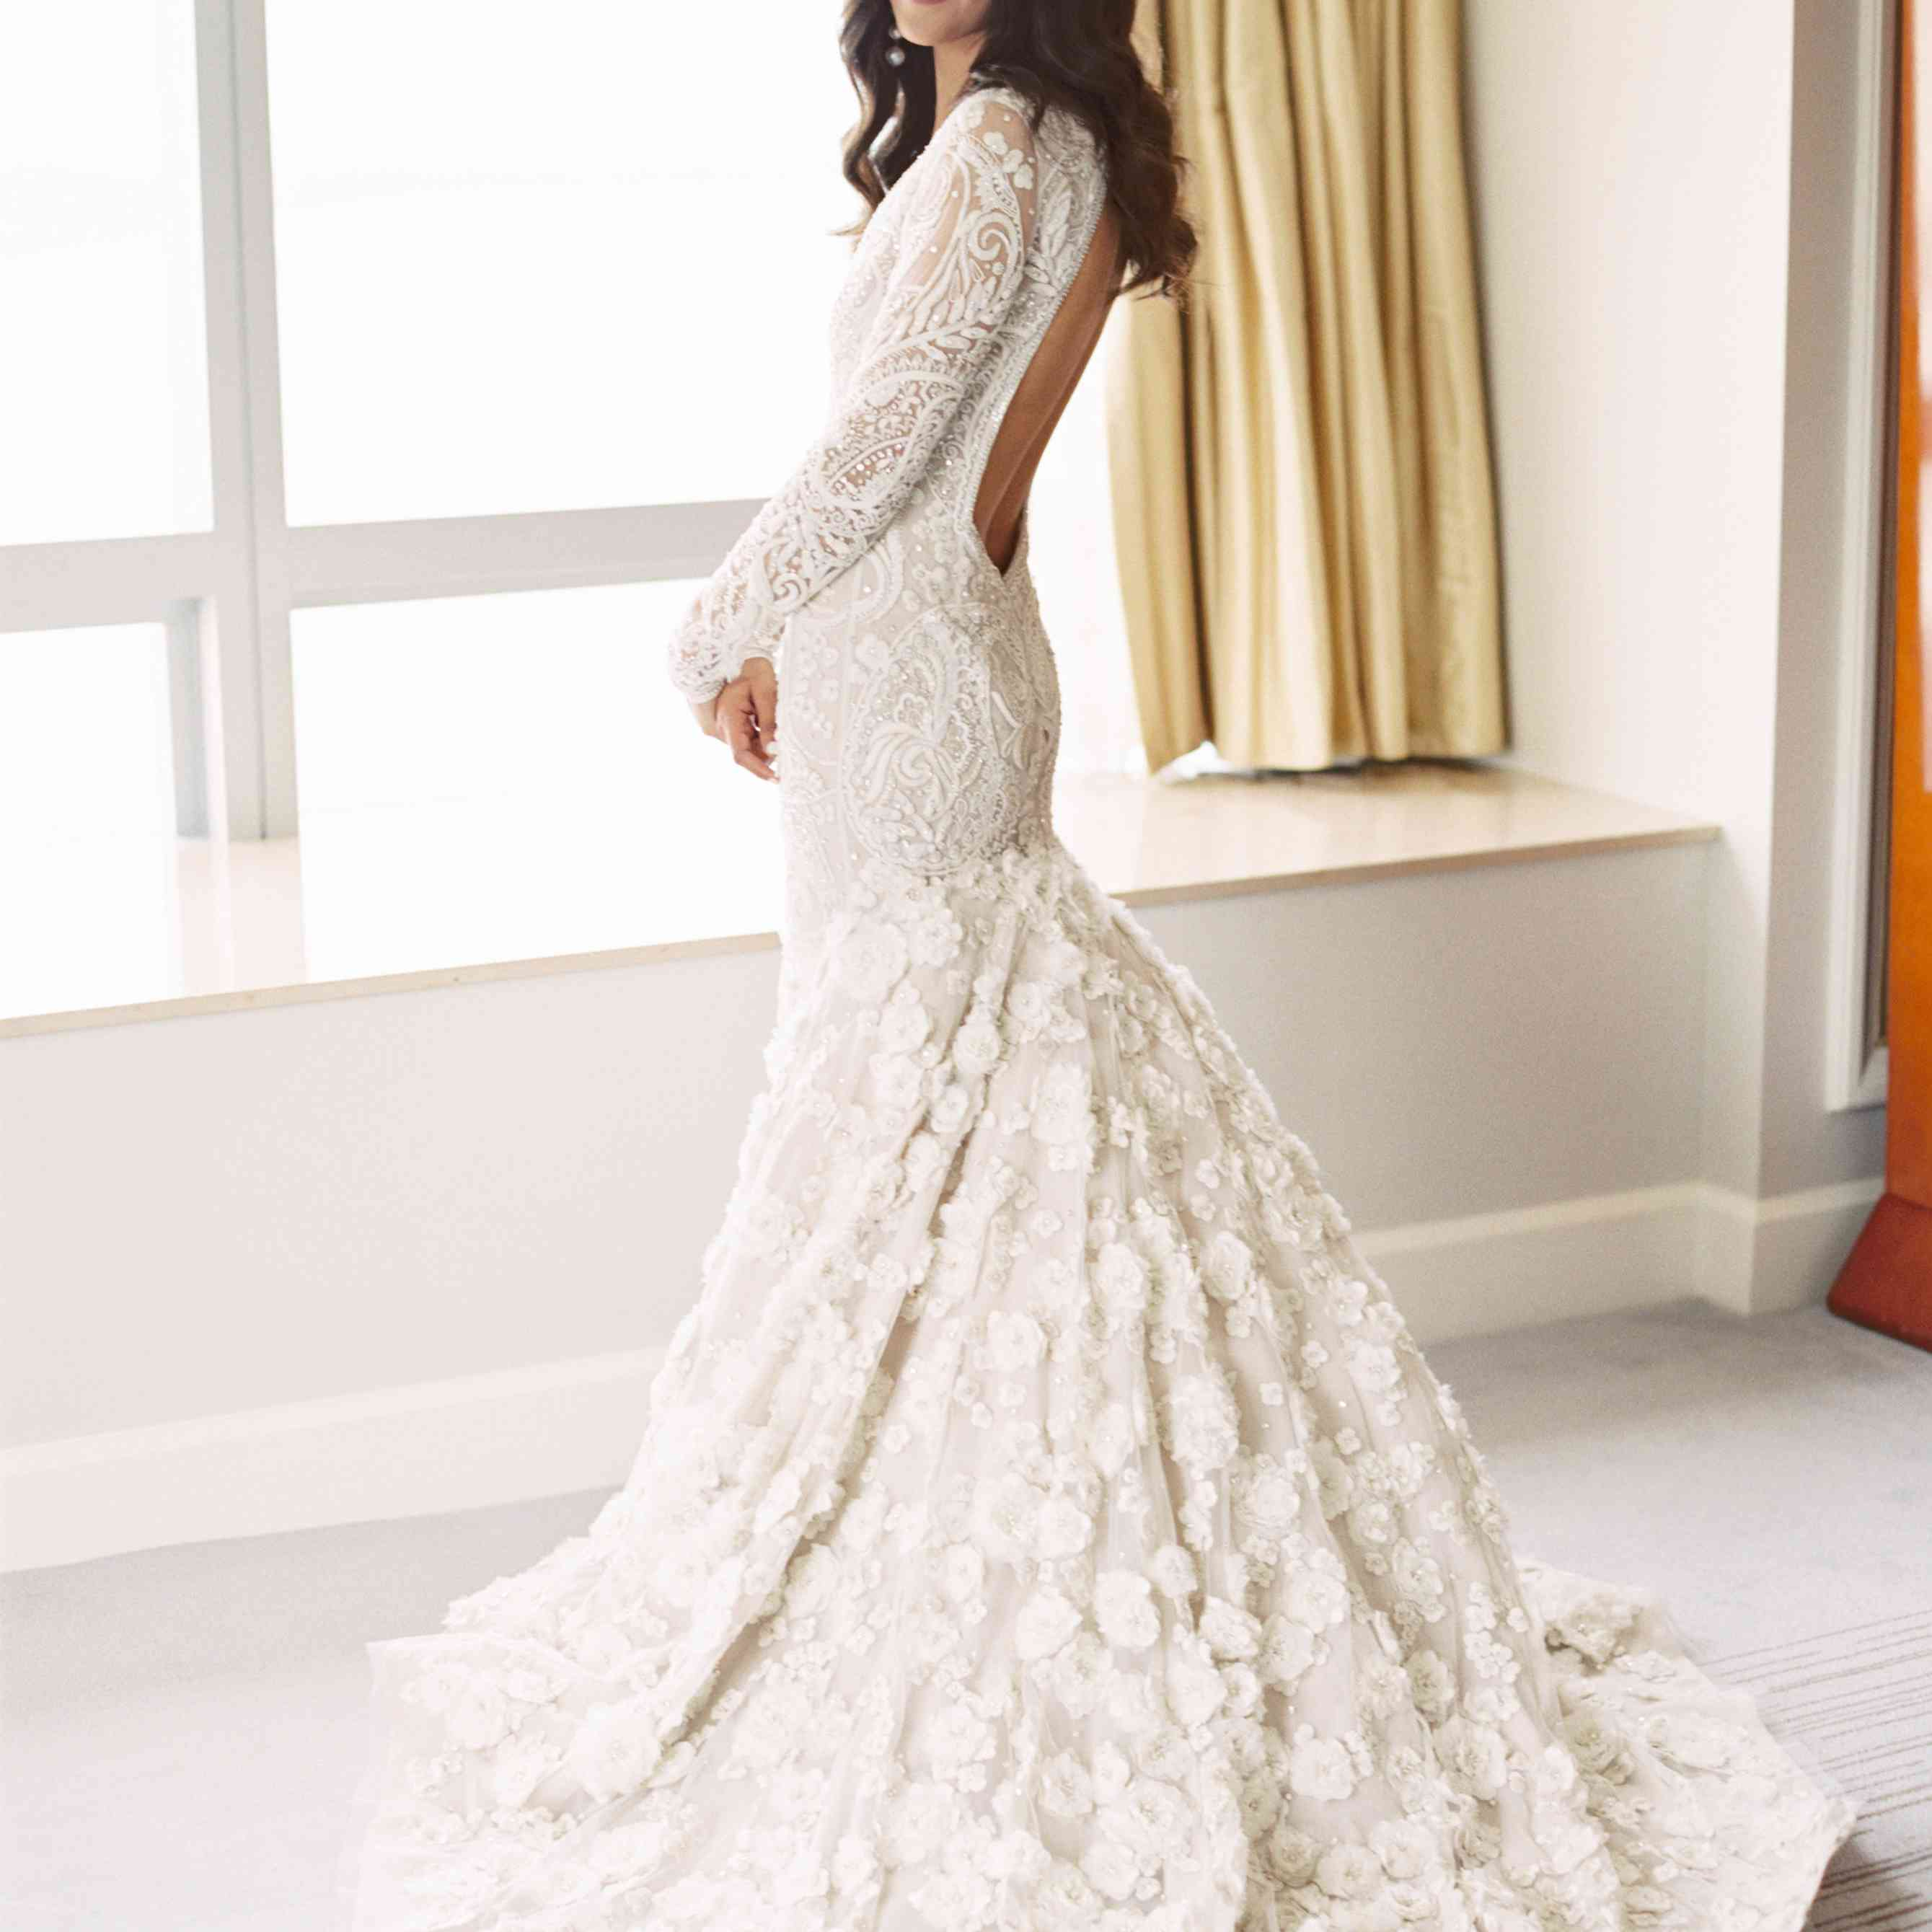 Bride in Backless Lace Wedding Dress